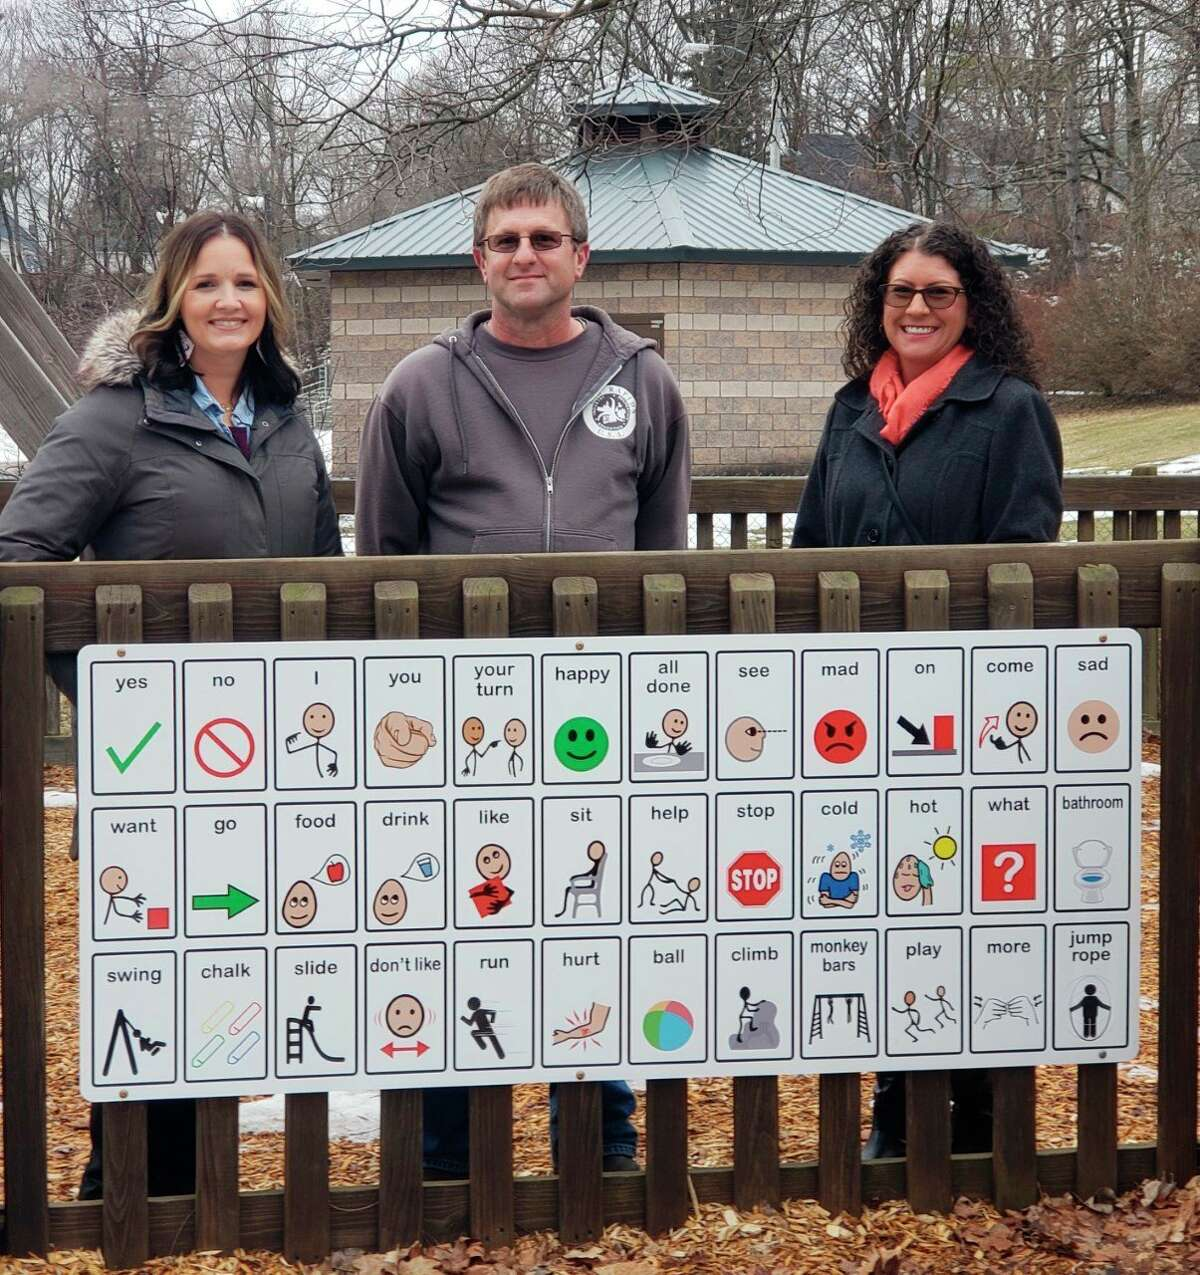 Pictured from left to right are Community Mental Health Program Supervisor Emily Bongard, Parks and Recreation employee Todd Eichler and Director of Public Works Heather Bowman. The group worked together to get the sign installed at Hemlock Park. (Courtesy photo)